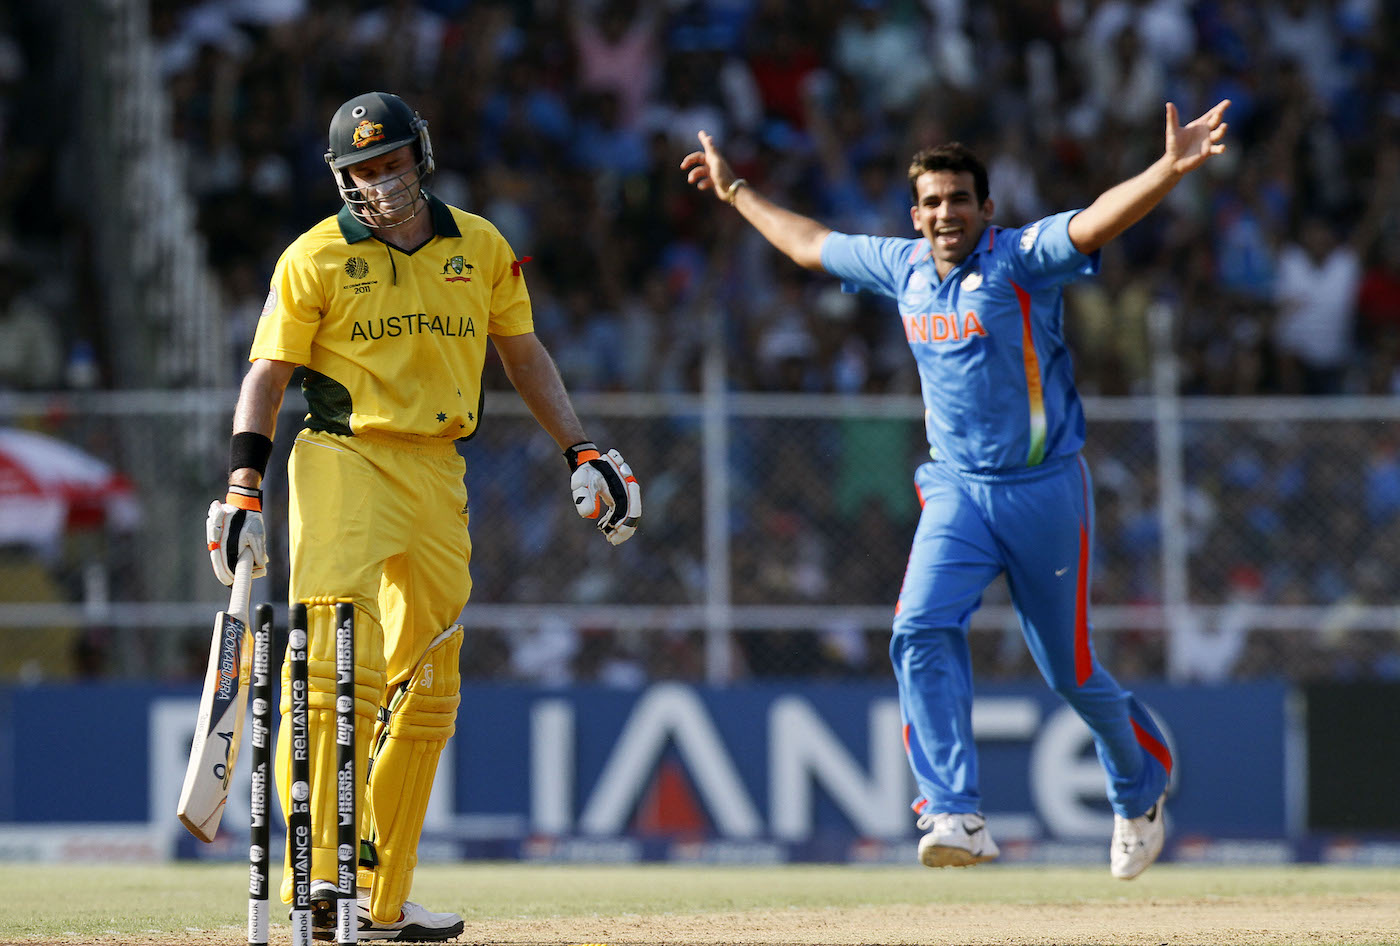 Zaheer Khan deployed his lethal new weapon, the knuckleball, against a hapless Michael Hussey in the quarter-final